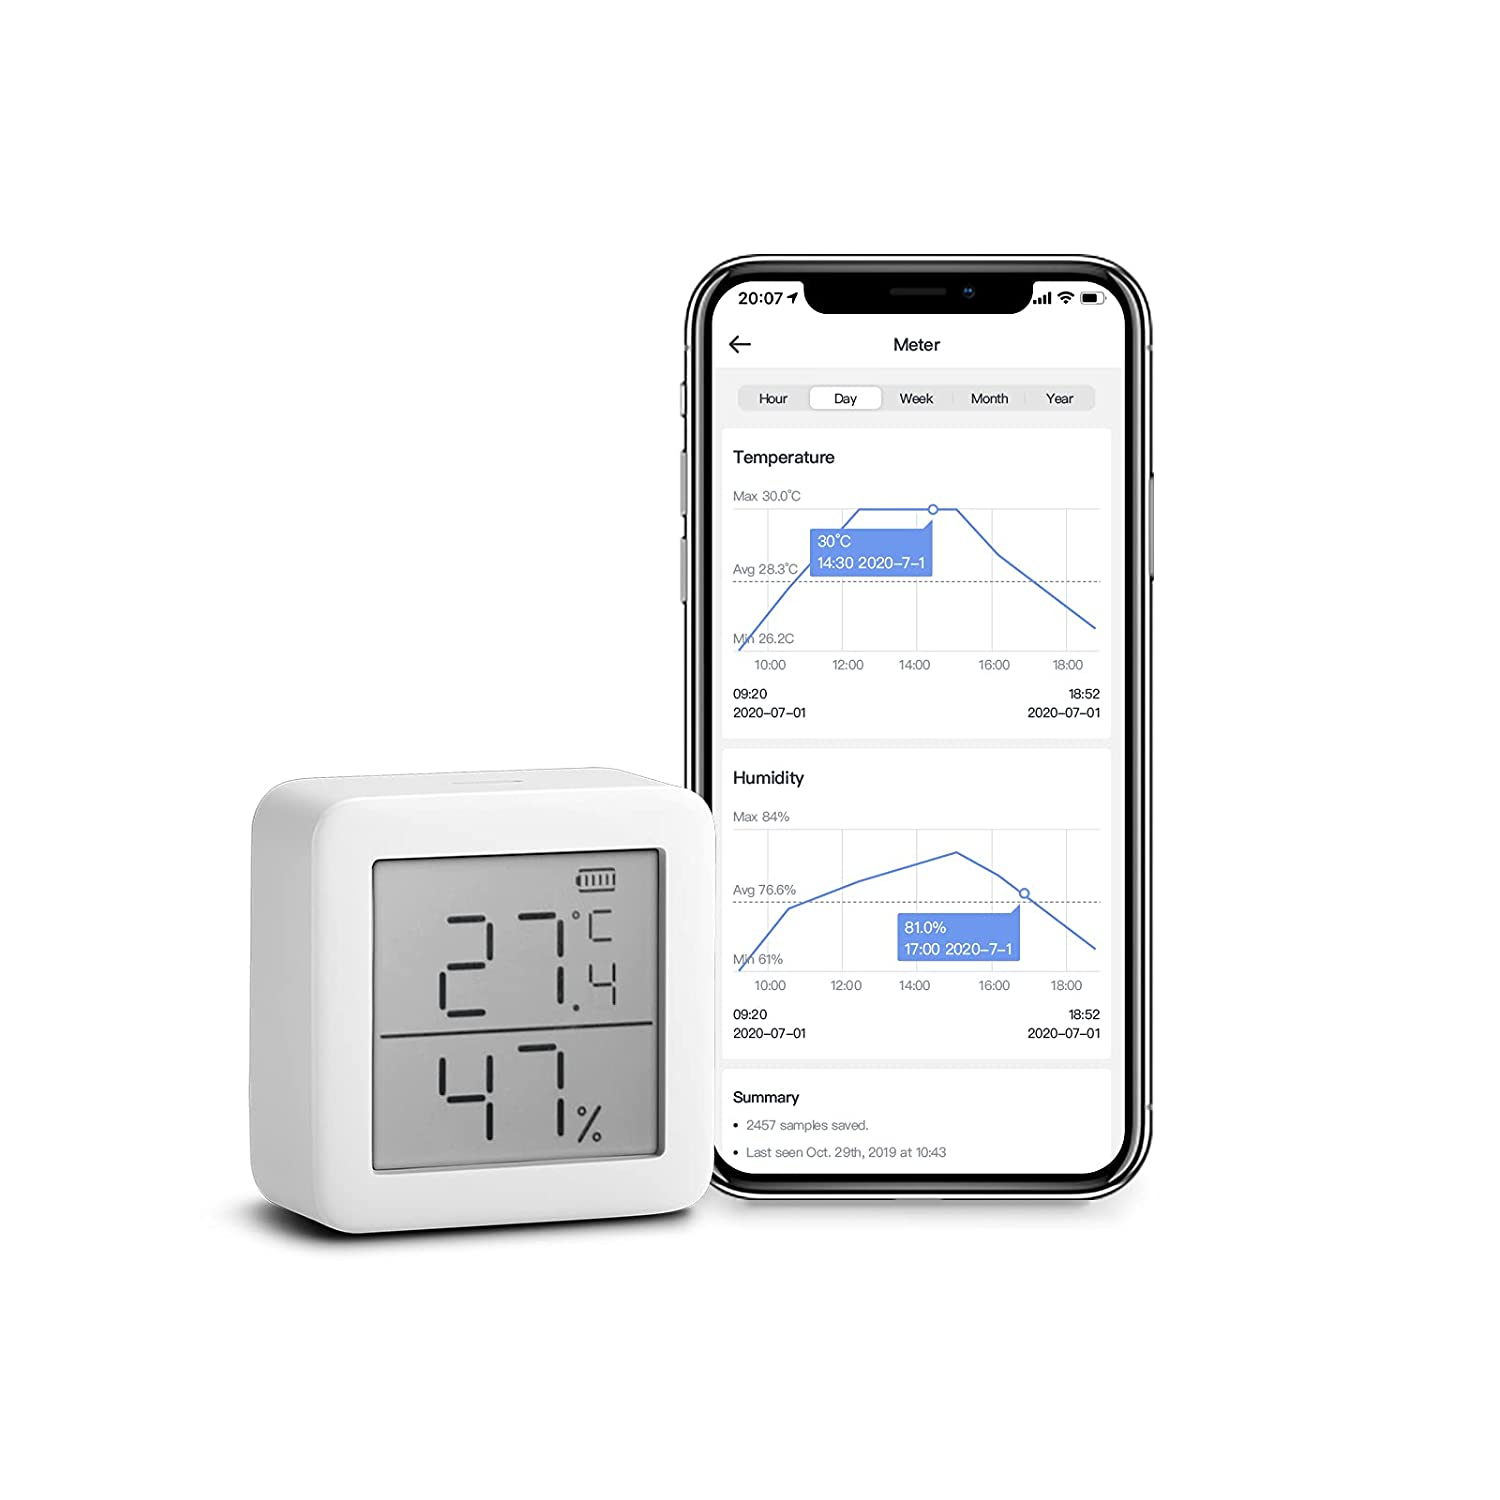 SwitchBot Smart Wi-Fi Bluetooth Thermometer 11.97 Coupon